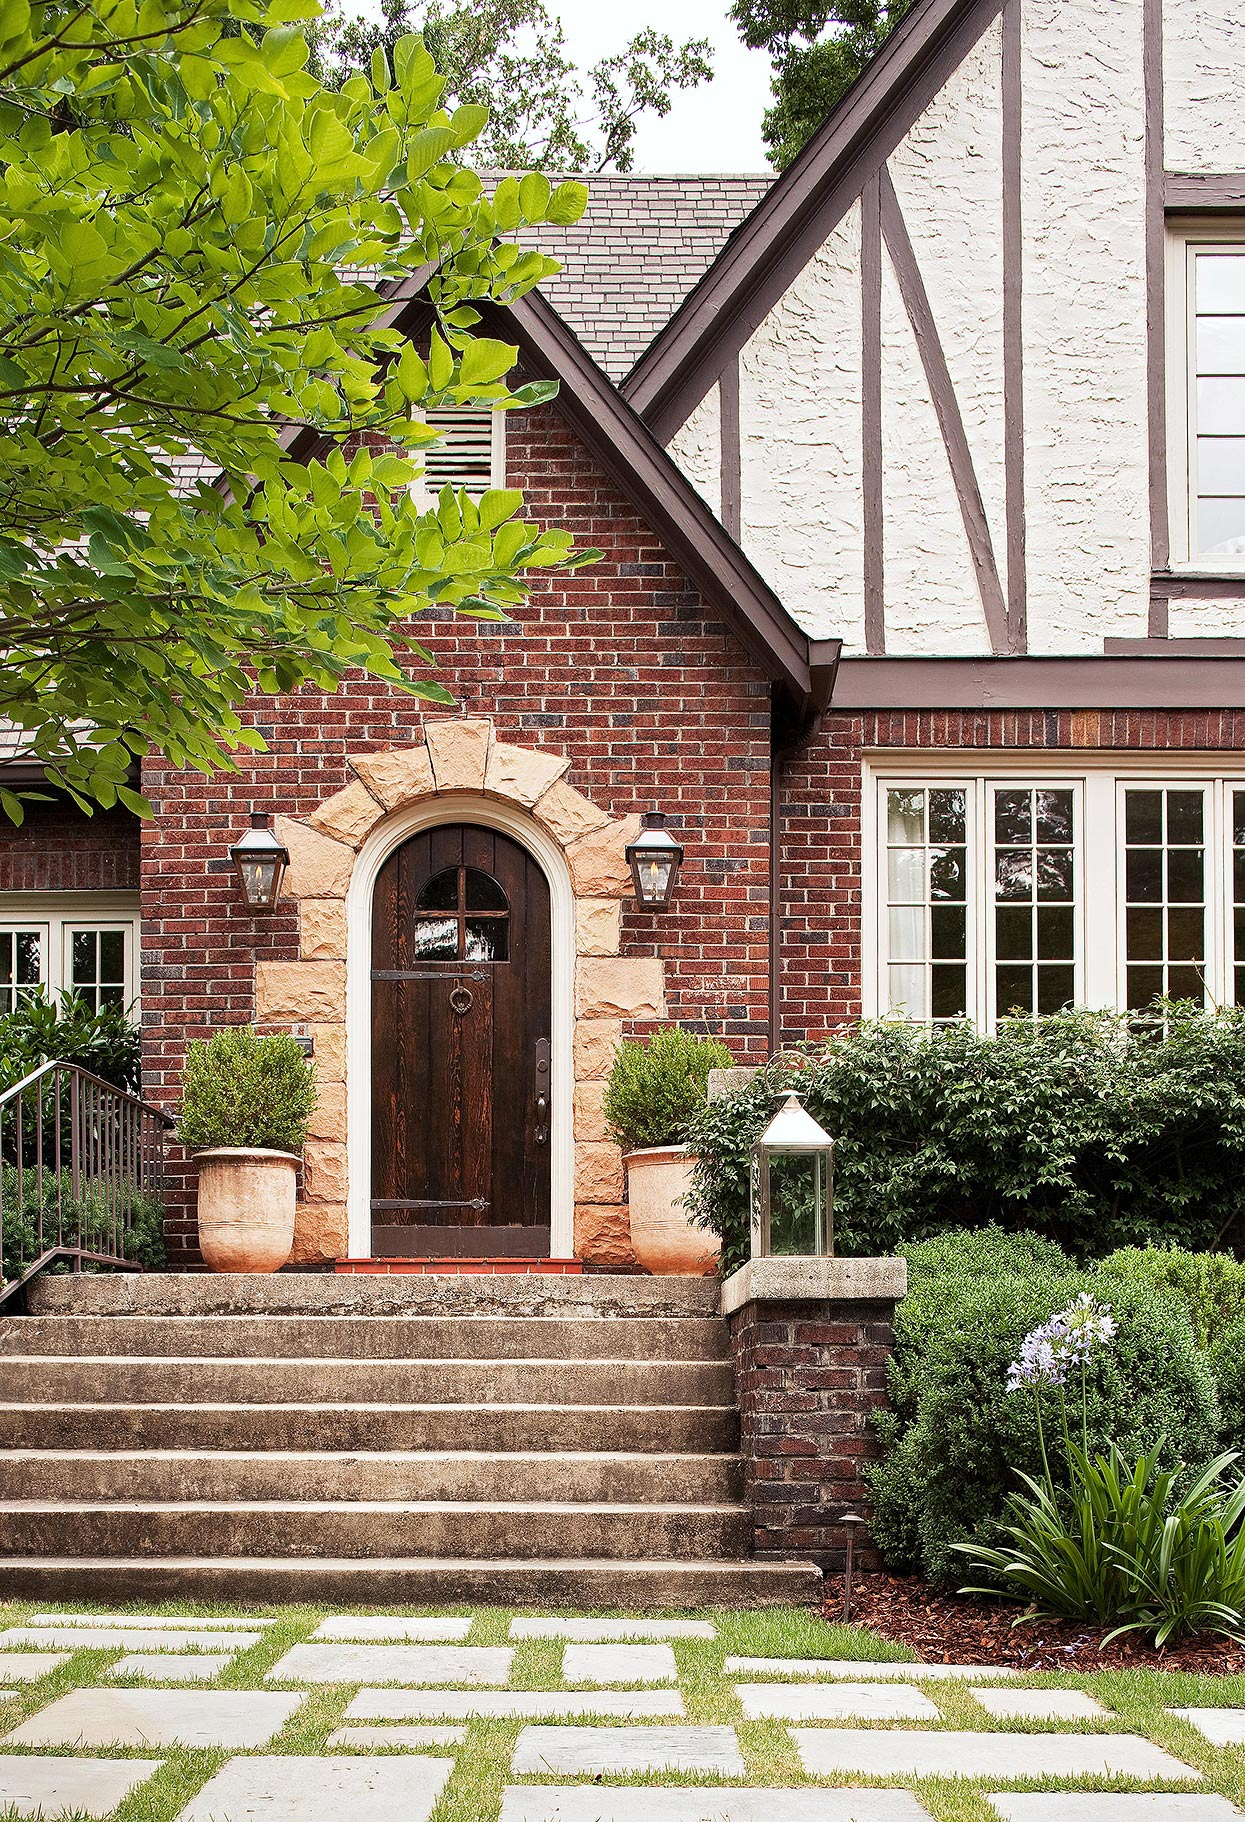 arched doorway with stone trim on tudor home